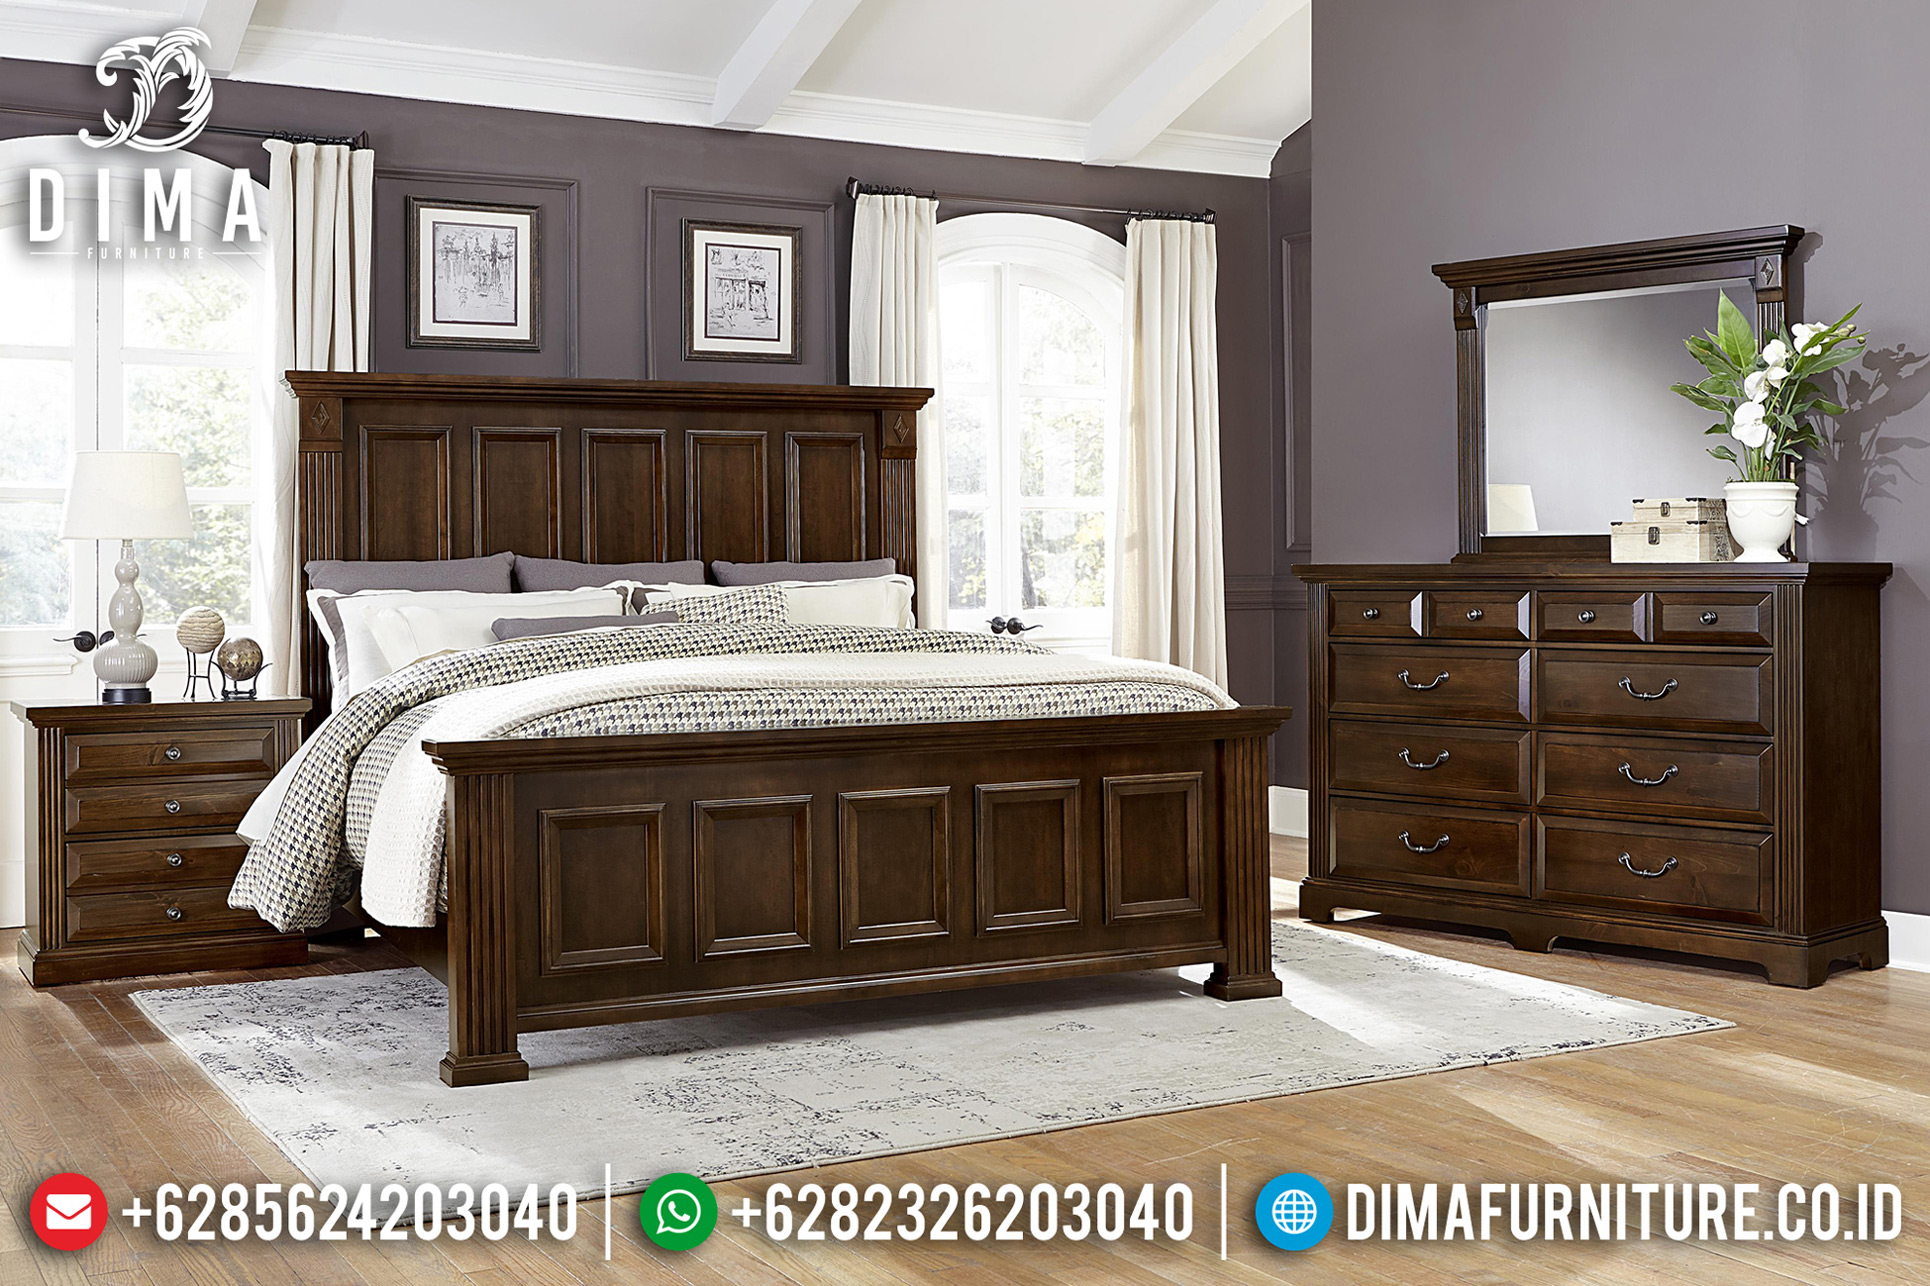 Desain Kamar Set Klasik Jati Natural New Design Interior Inspiration BT-0674